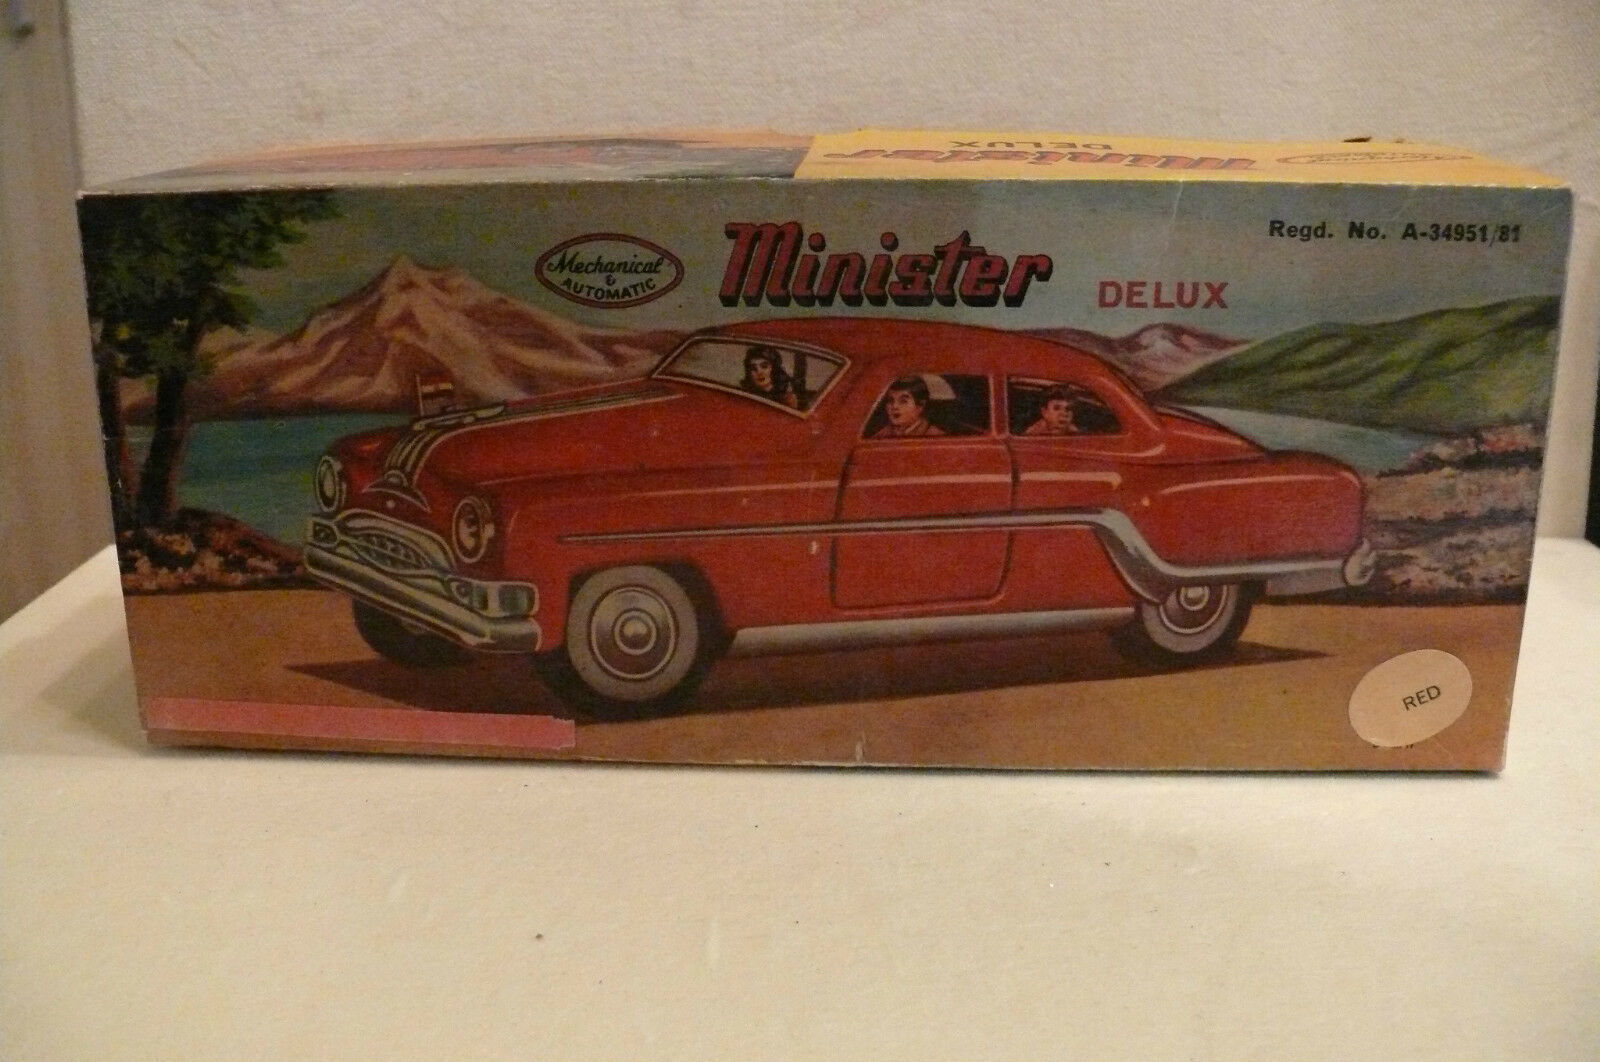 Minister Deluxe Tin Car ( Armar Toys, India)